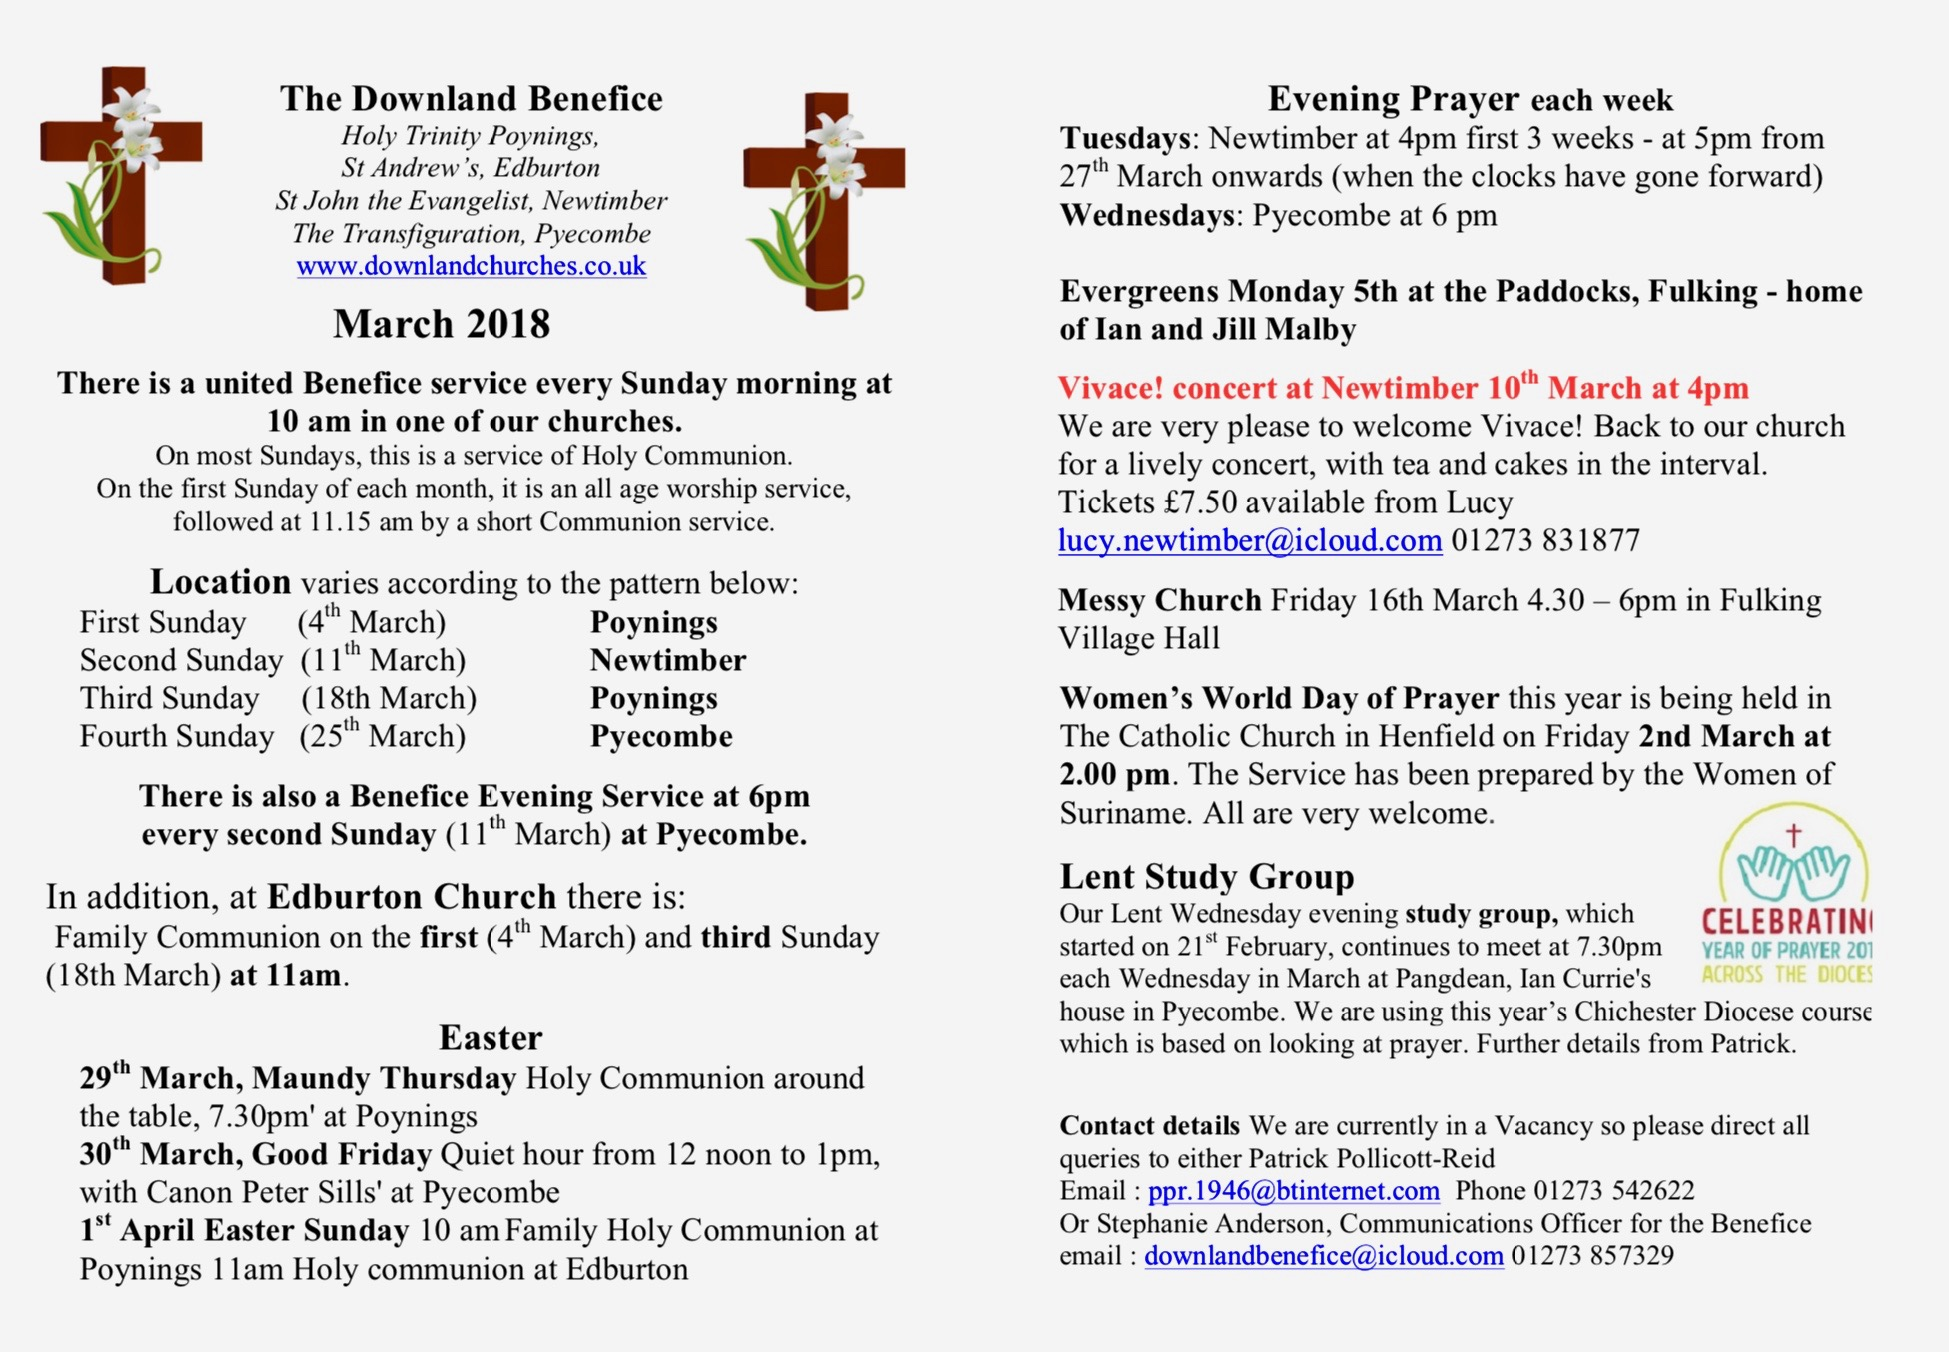 List of events and services in March